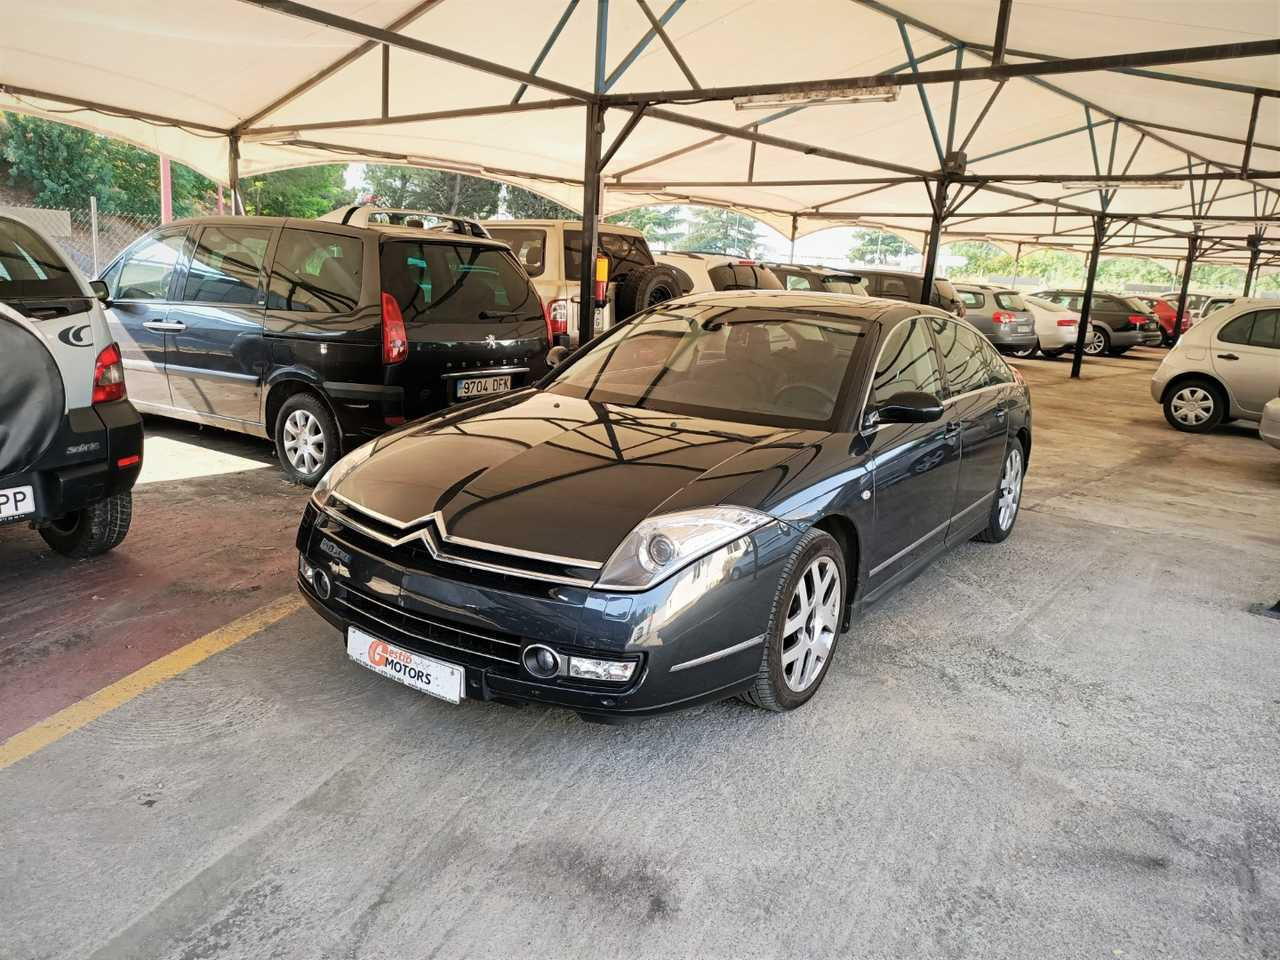 Citroën C6 3.0i V6 EXCLUSIVE AUT.   - Foto 1